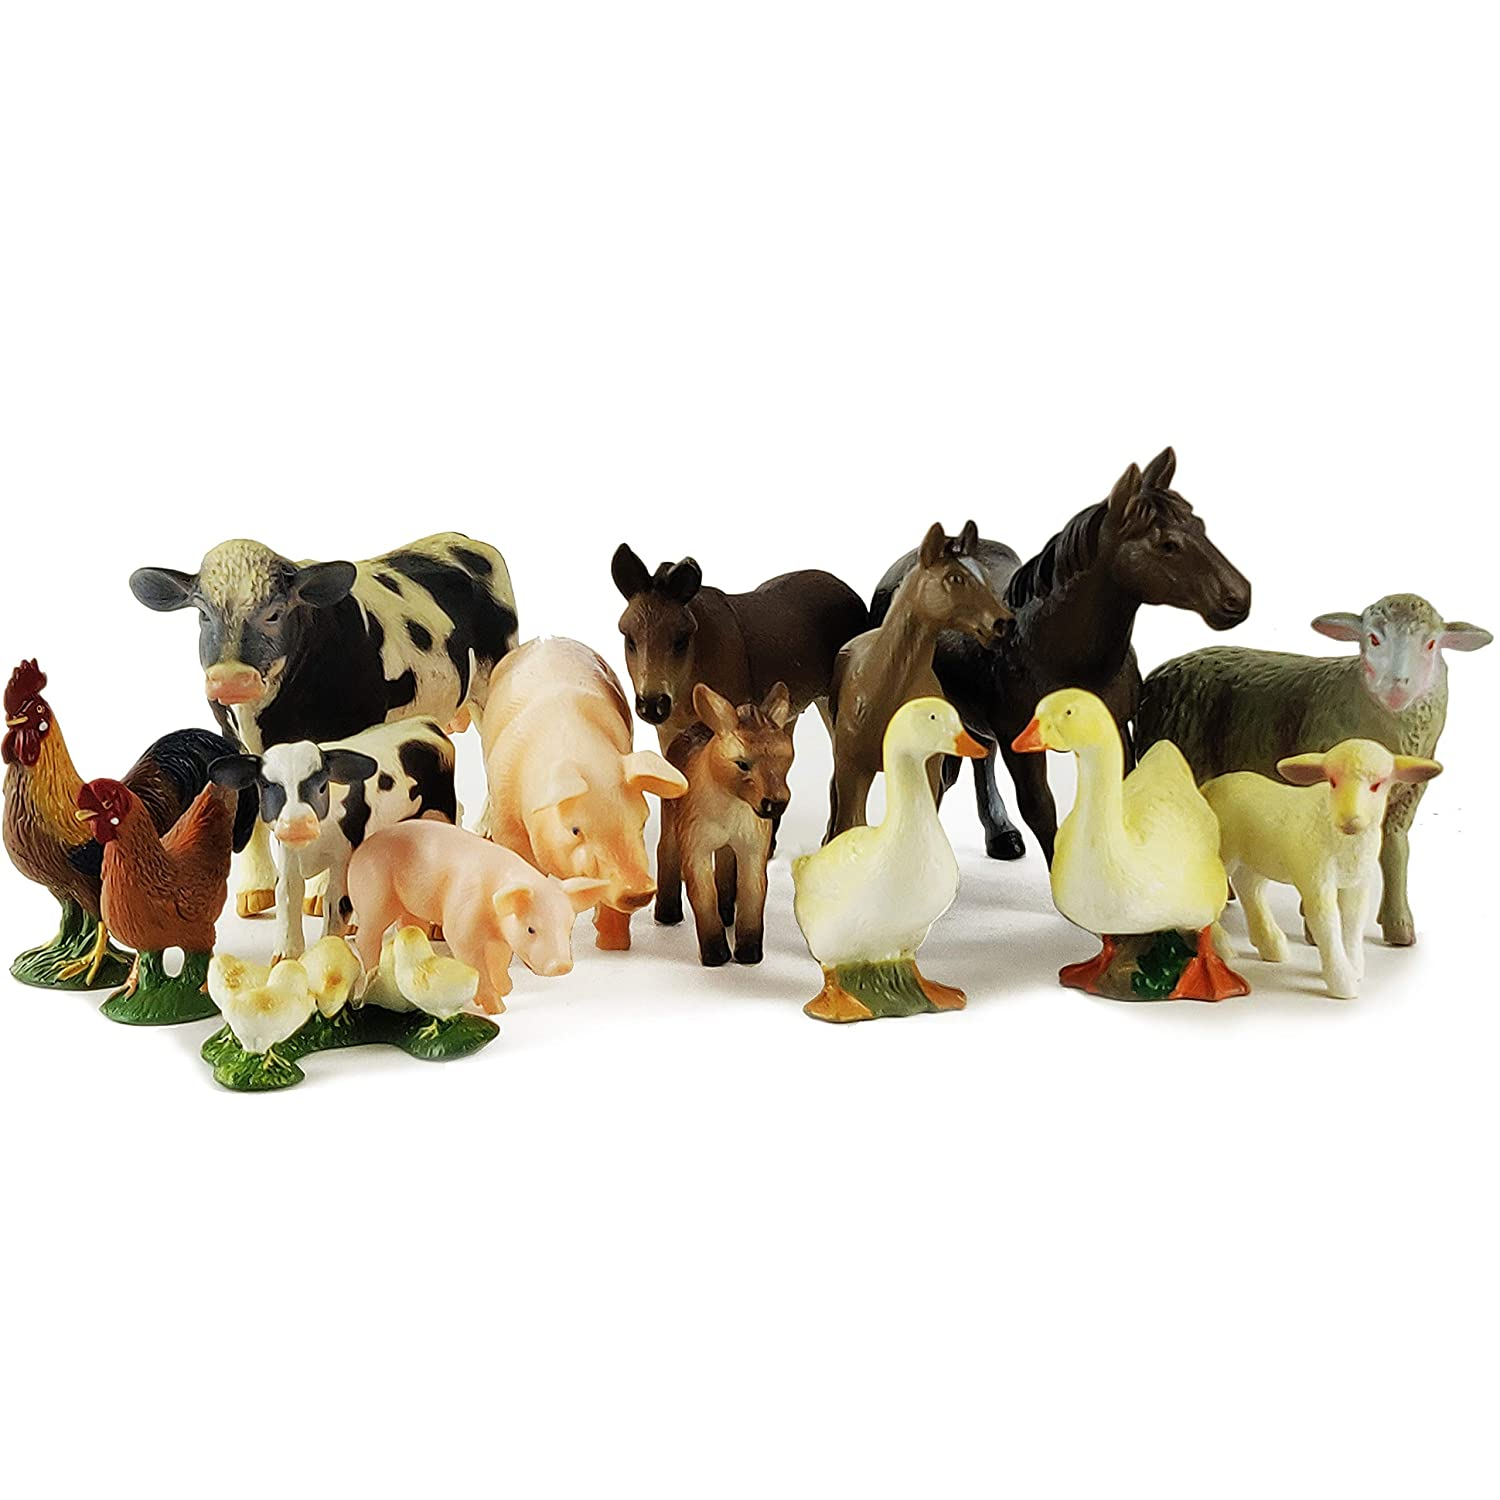 Boley (15-Piece Farm Animal Playset - with Different Varieties of Realistic Looking Farm Animals and Baby Farm Animals - Figurines Ranging from Cows, Pigs, Sheep, Ducks, Geese, Horses, and Chickens